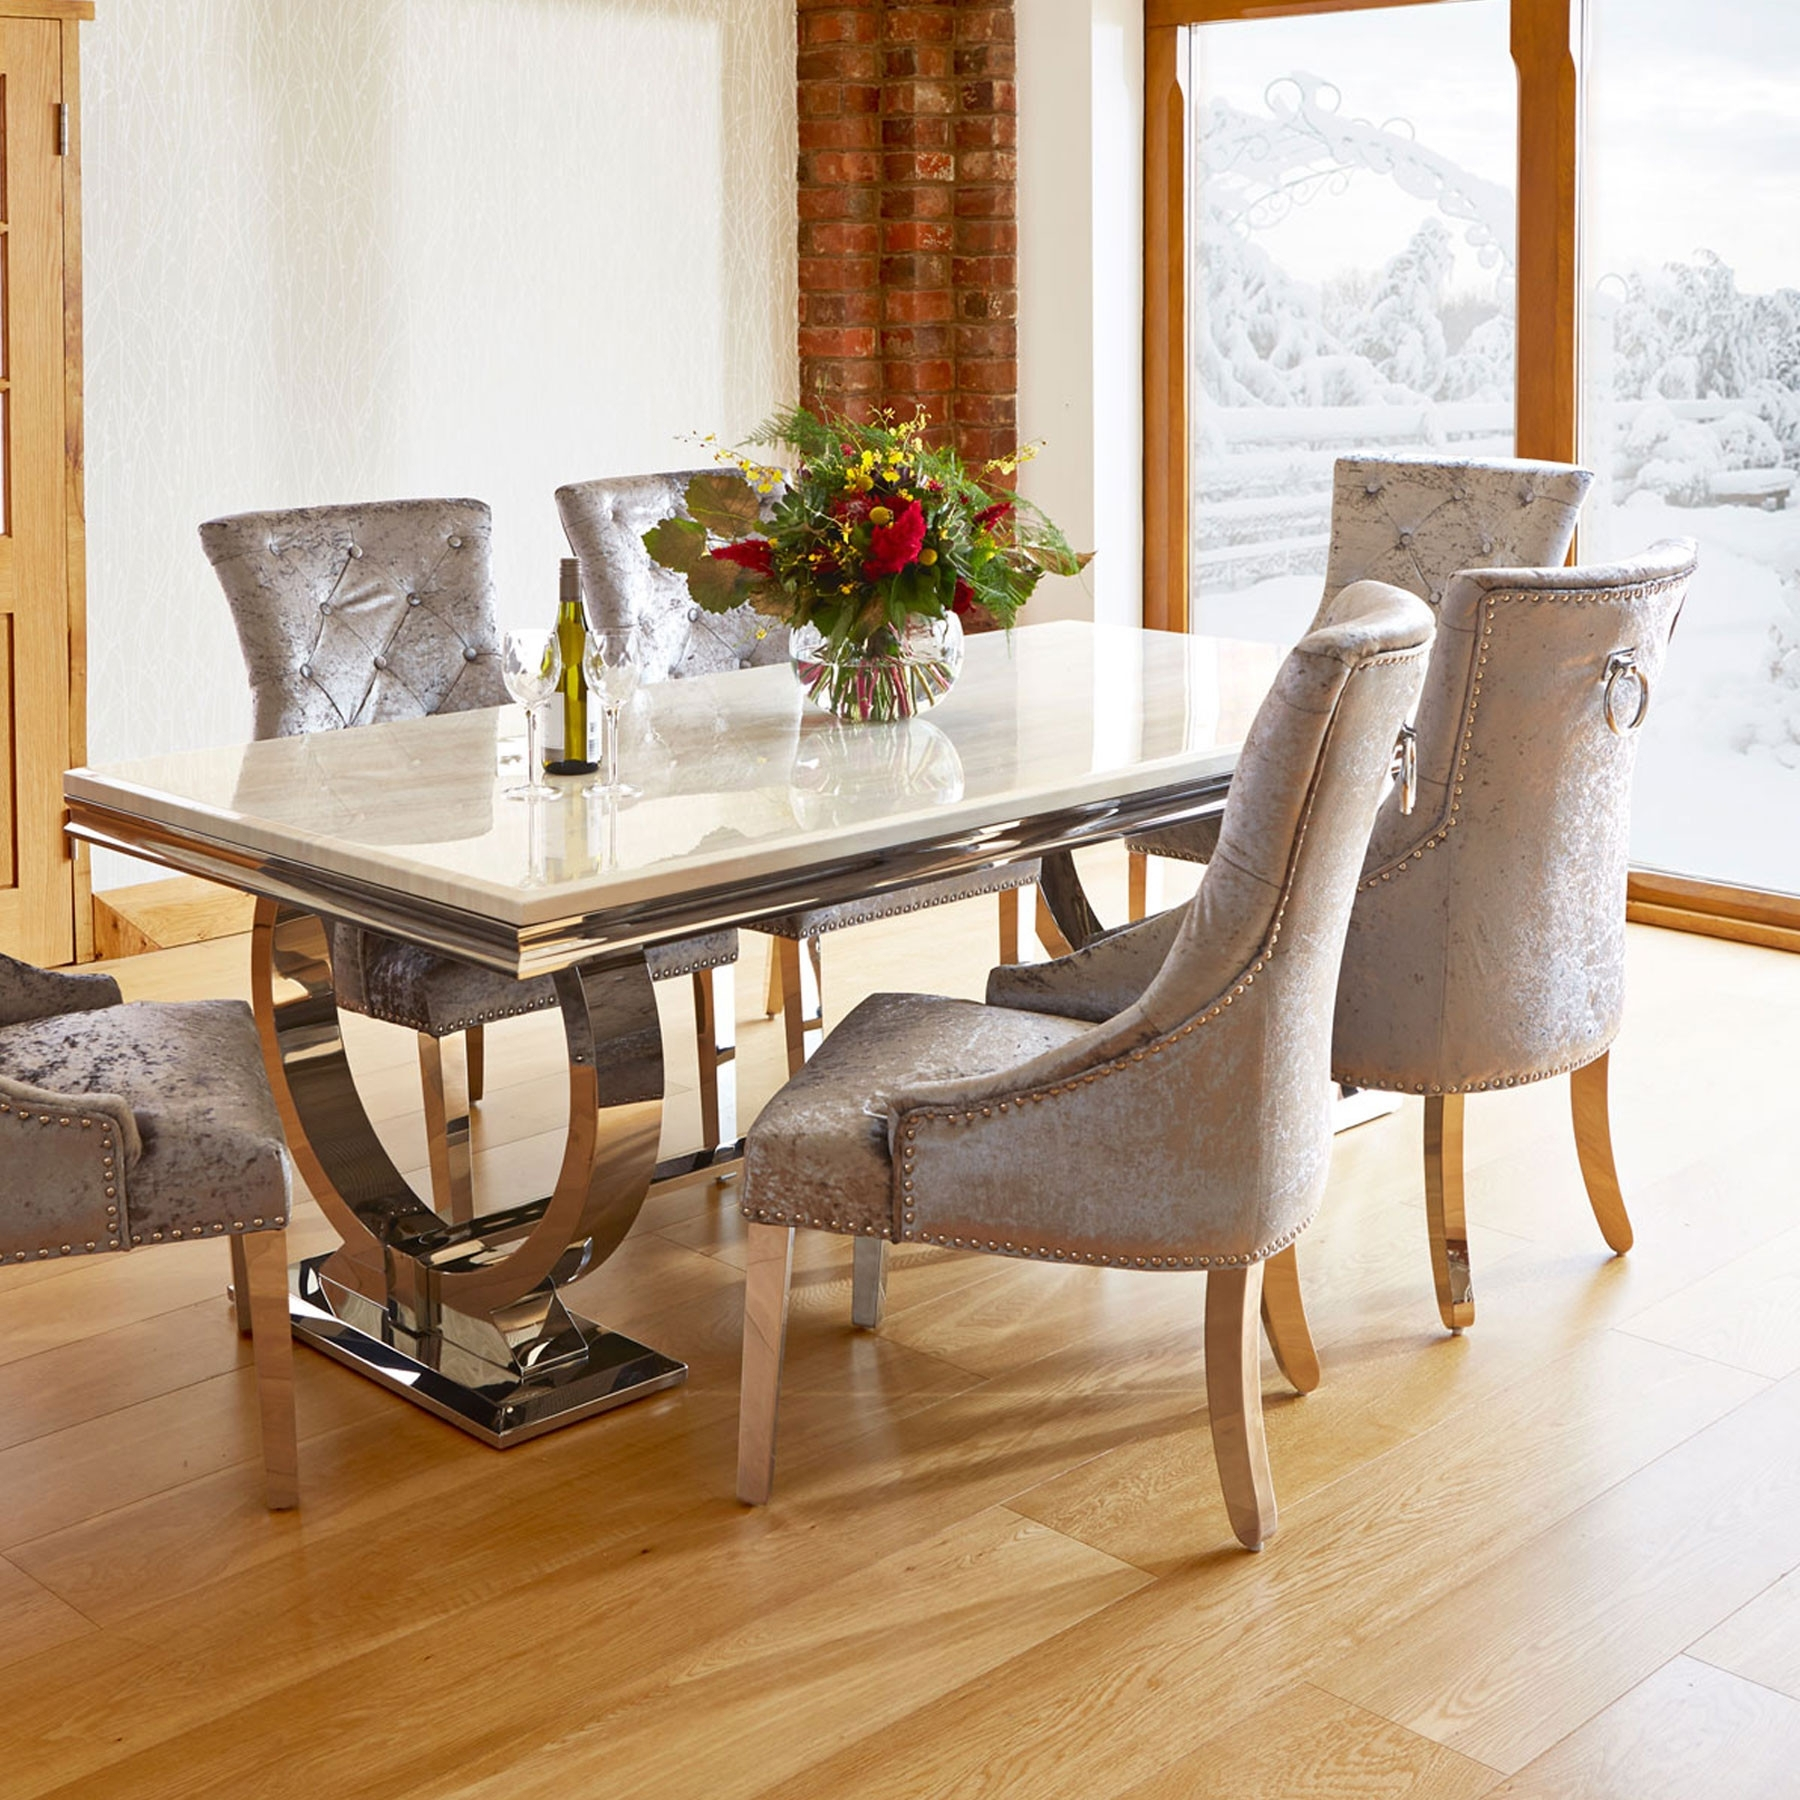 Renata Marble And Chrome Dining Table & 6 Silver Louis Chairs Intended For Most Up To Date Chrome Dining Sets (View 21 of 25)